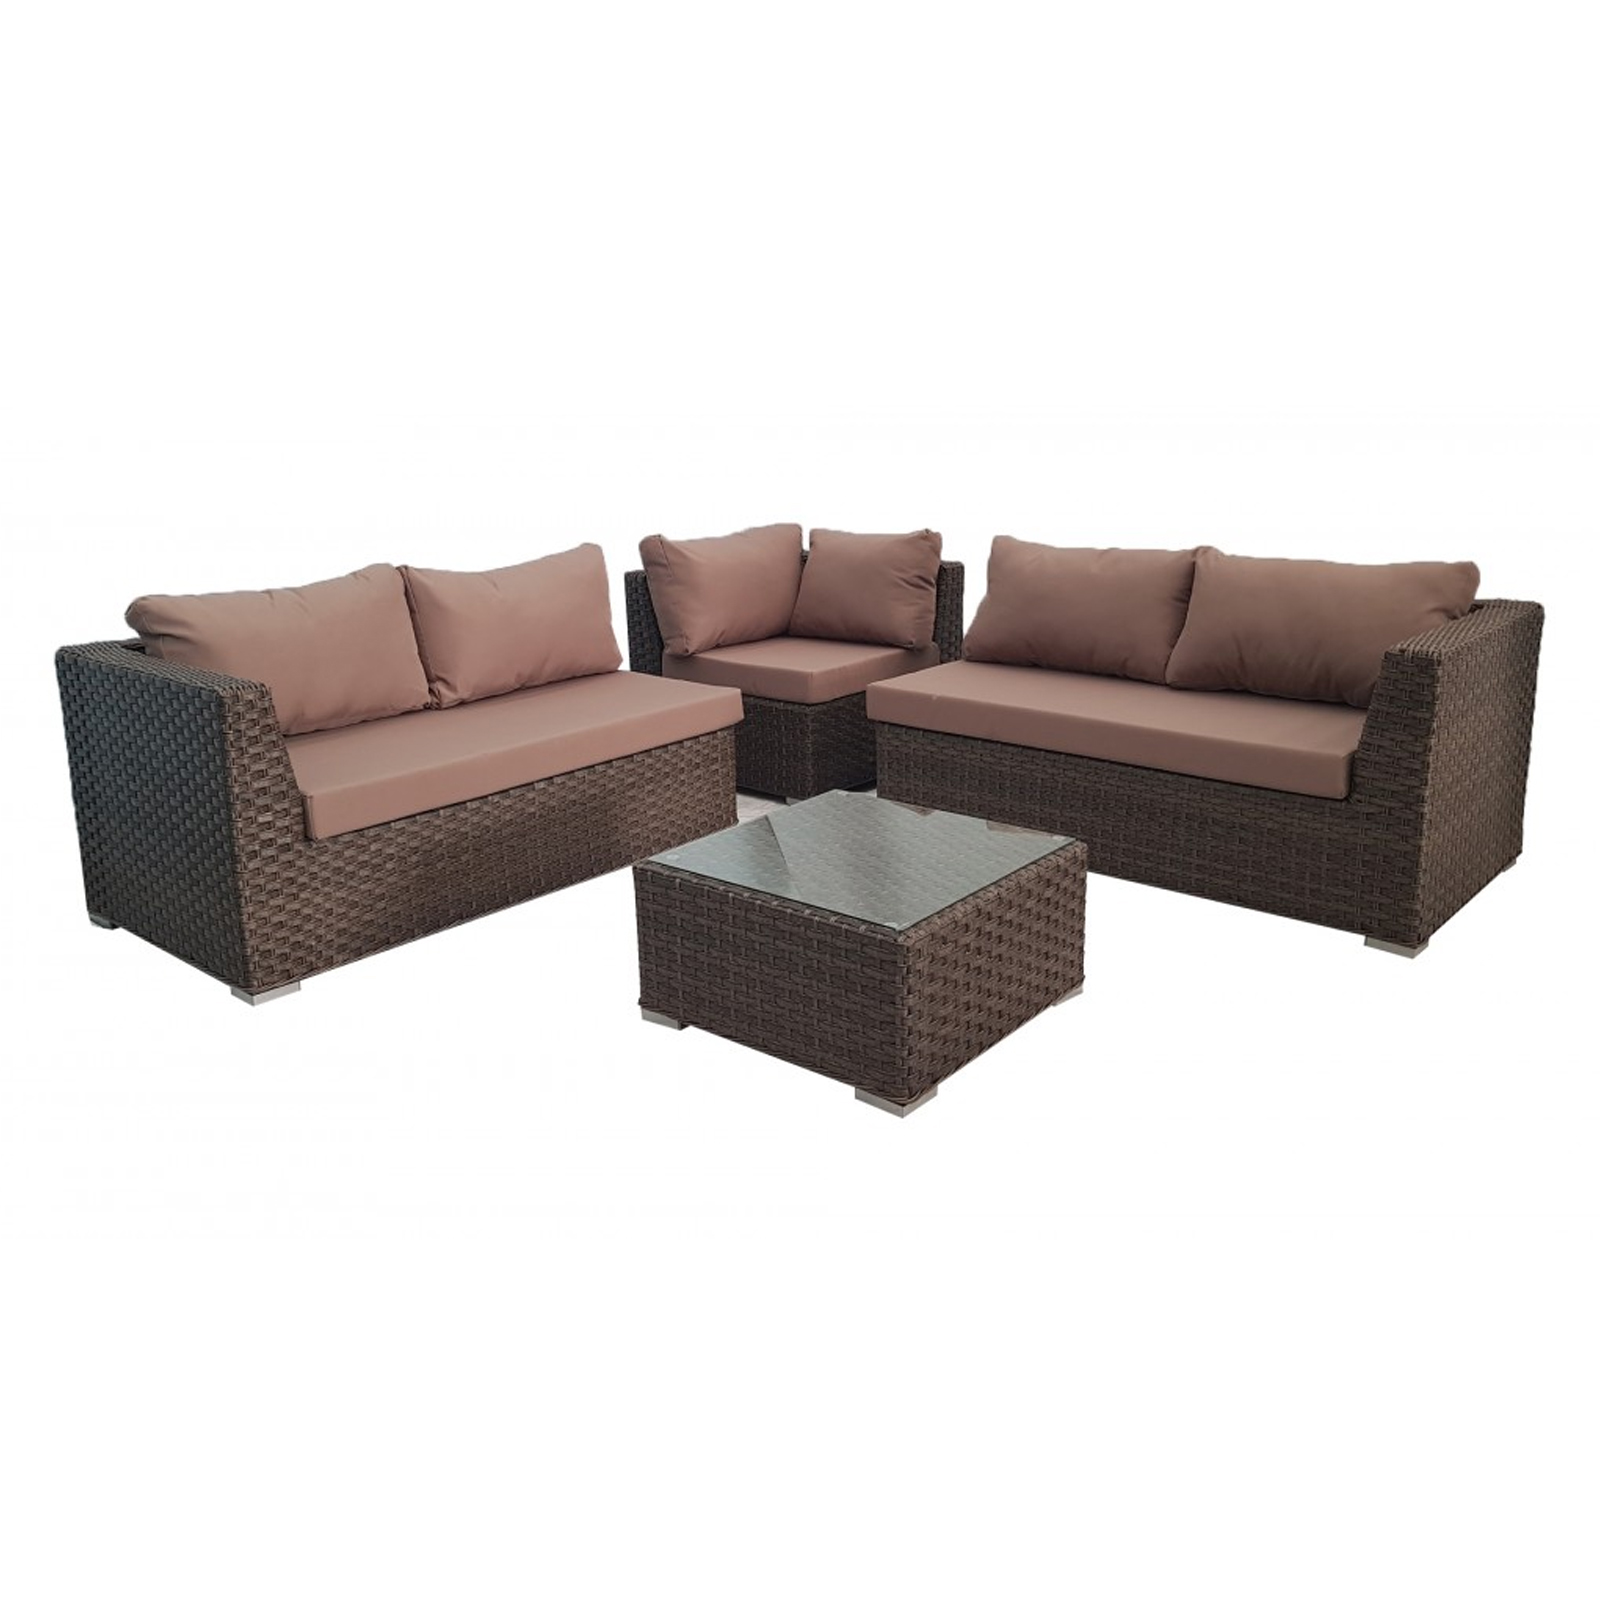 Alexandria Rattan Corner Sofa Reviews: Brown Outdoor Wicker Rattan Sofa Corner Lounge Set